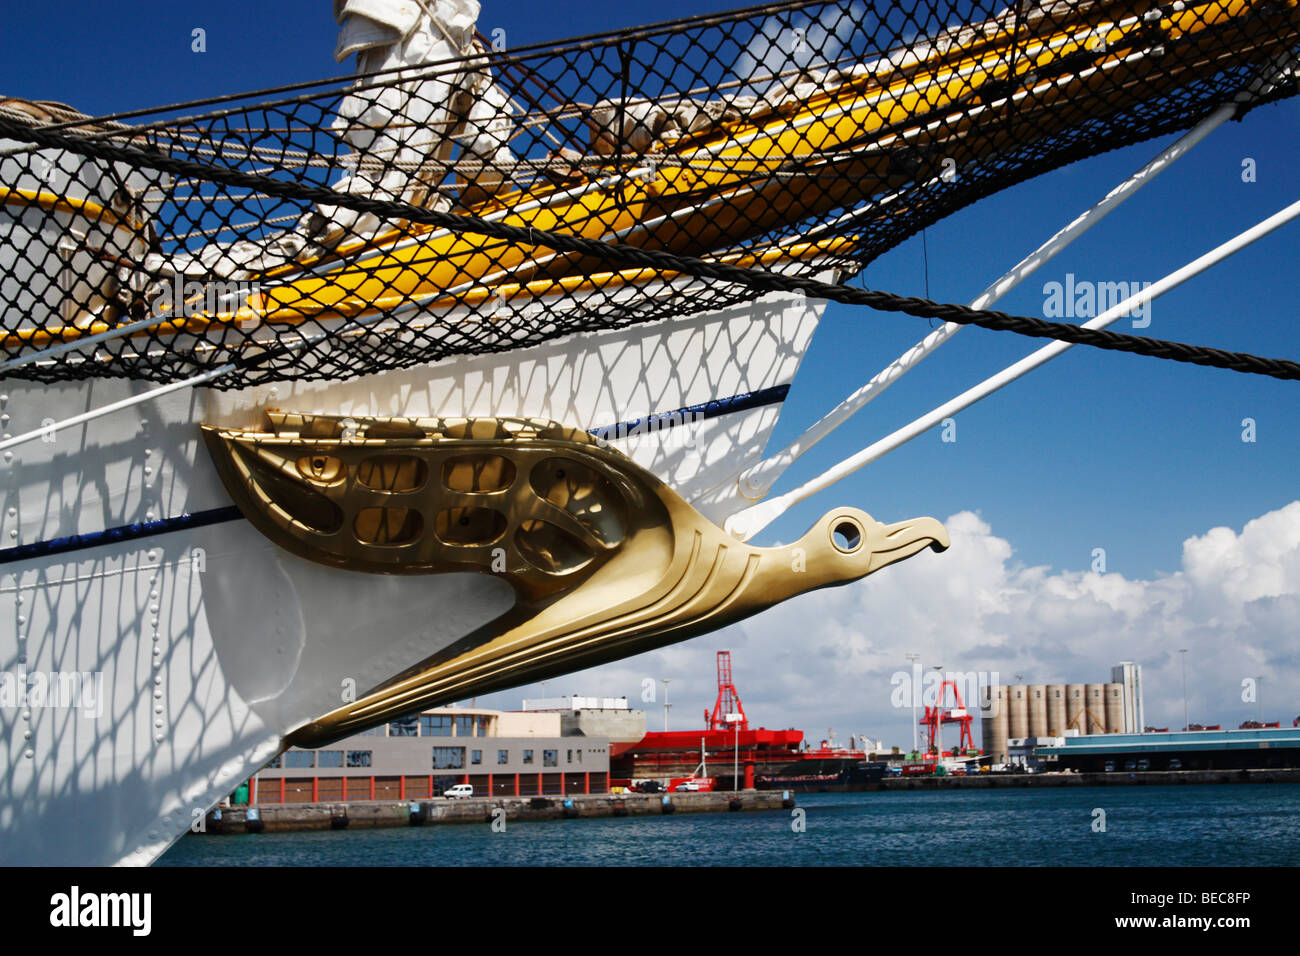 Bow of German tall ship Gorch Foch. - Stock Image